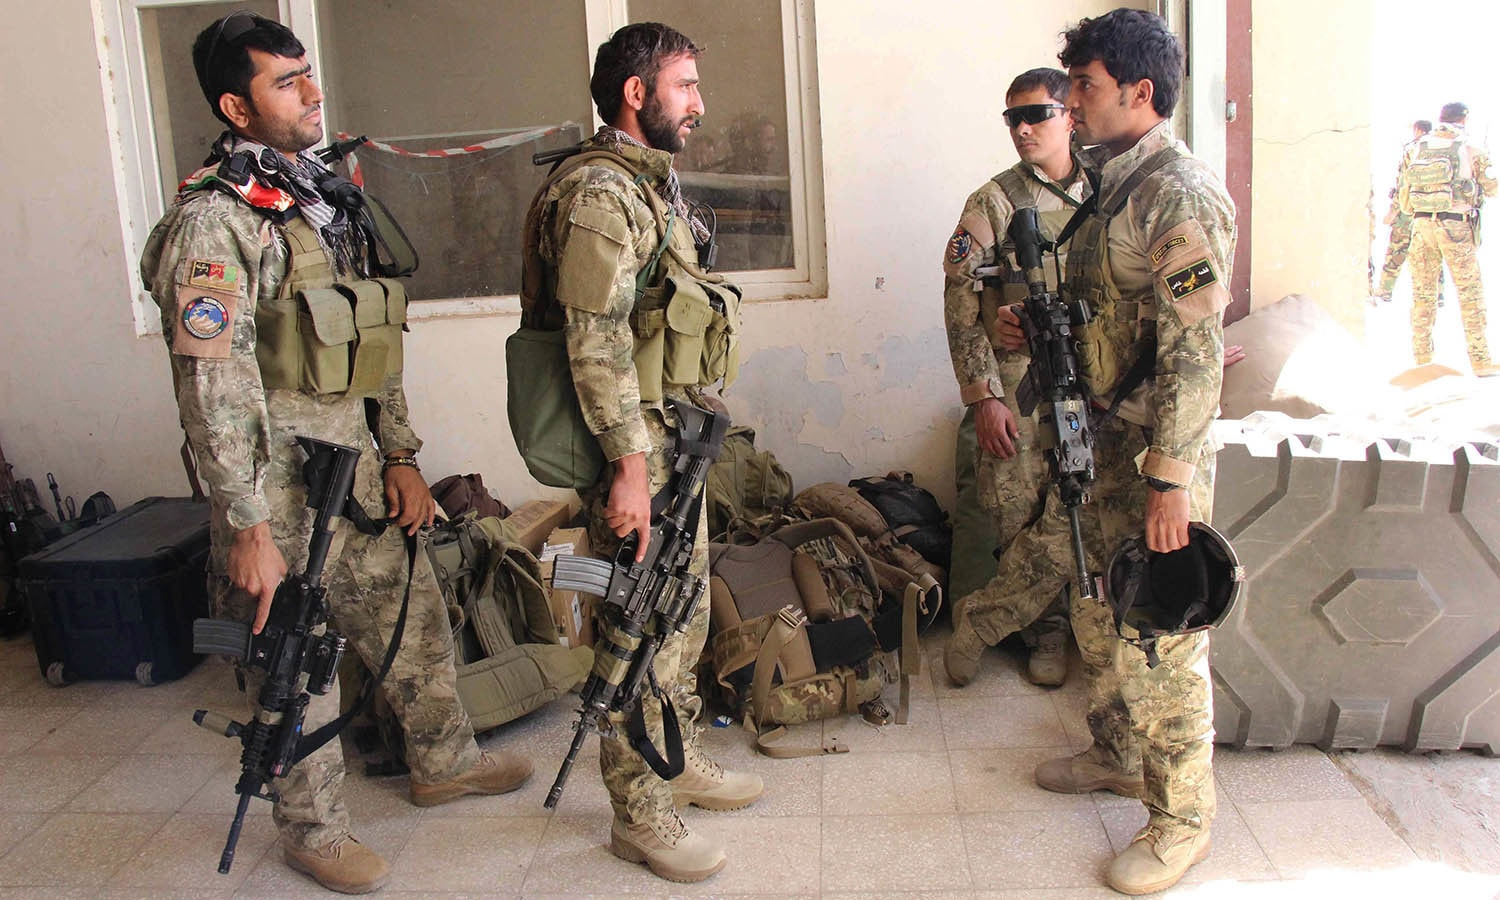 Afghan special forces arrive at the airport as they launch a counteroffensive to retake the city from Taliban insurgents, in Kunduz. — AFP